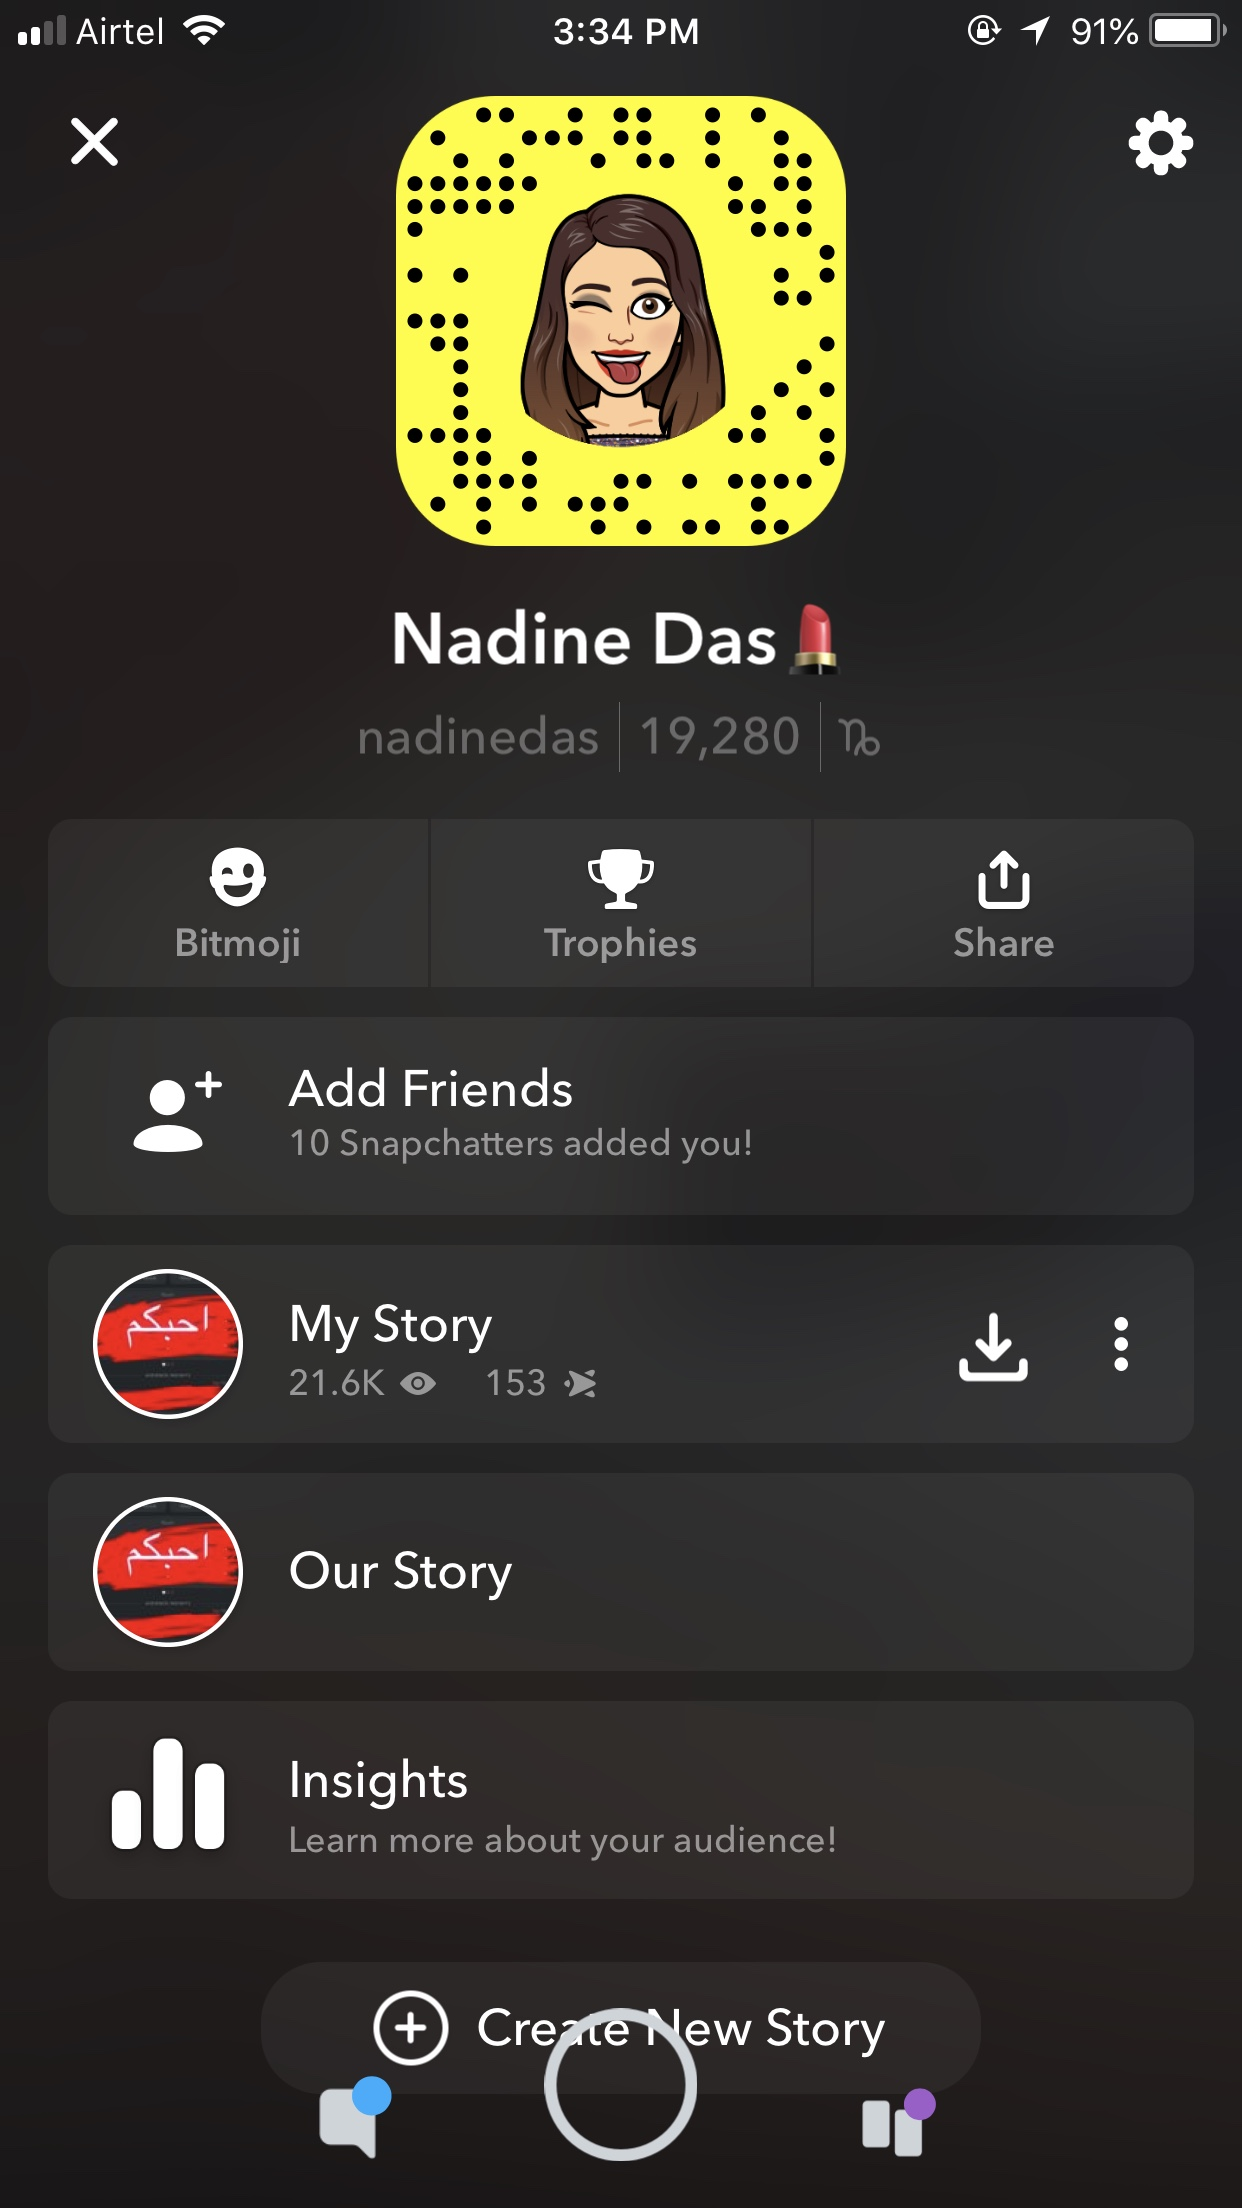 @nadinedasofficial's snapchat picture for nadinedasofficial